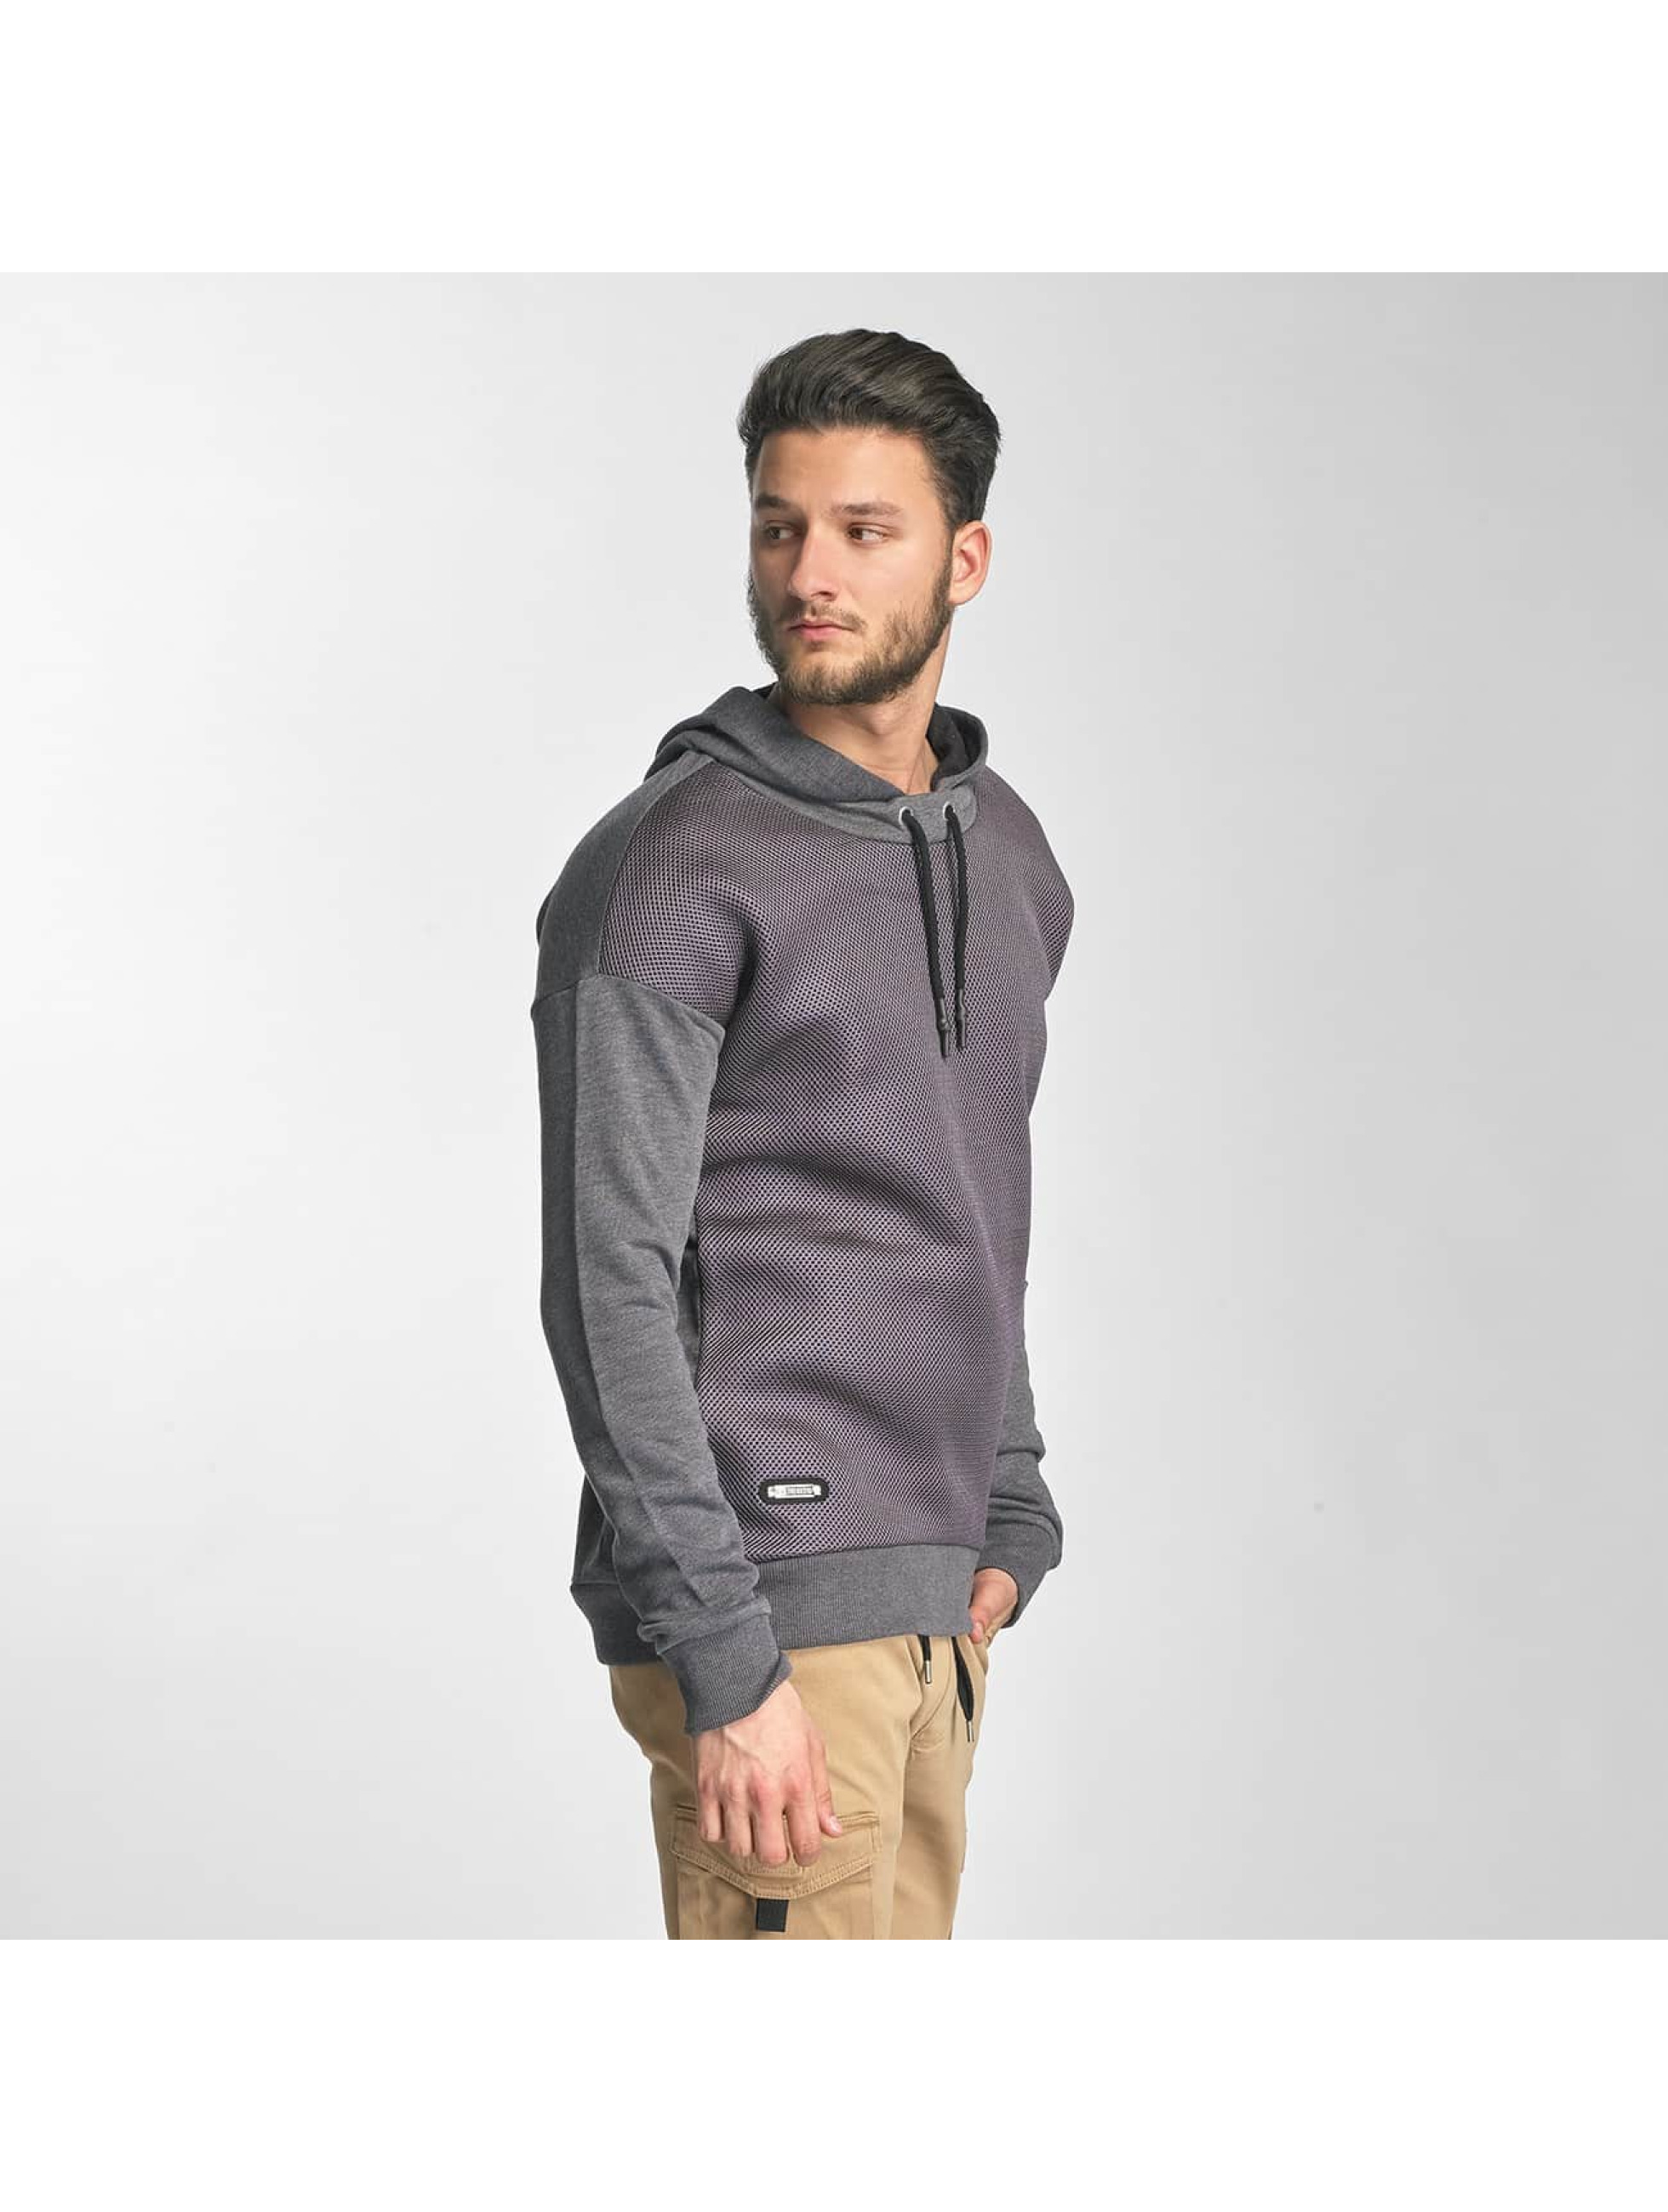 Red Bridge Hoody Carbon Network grijs